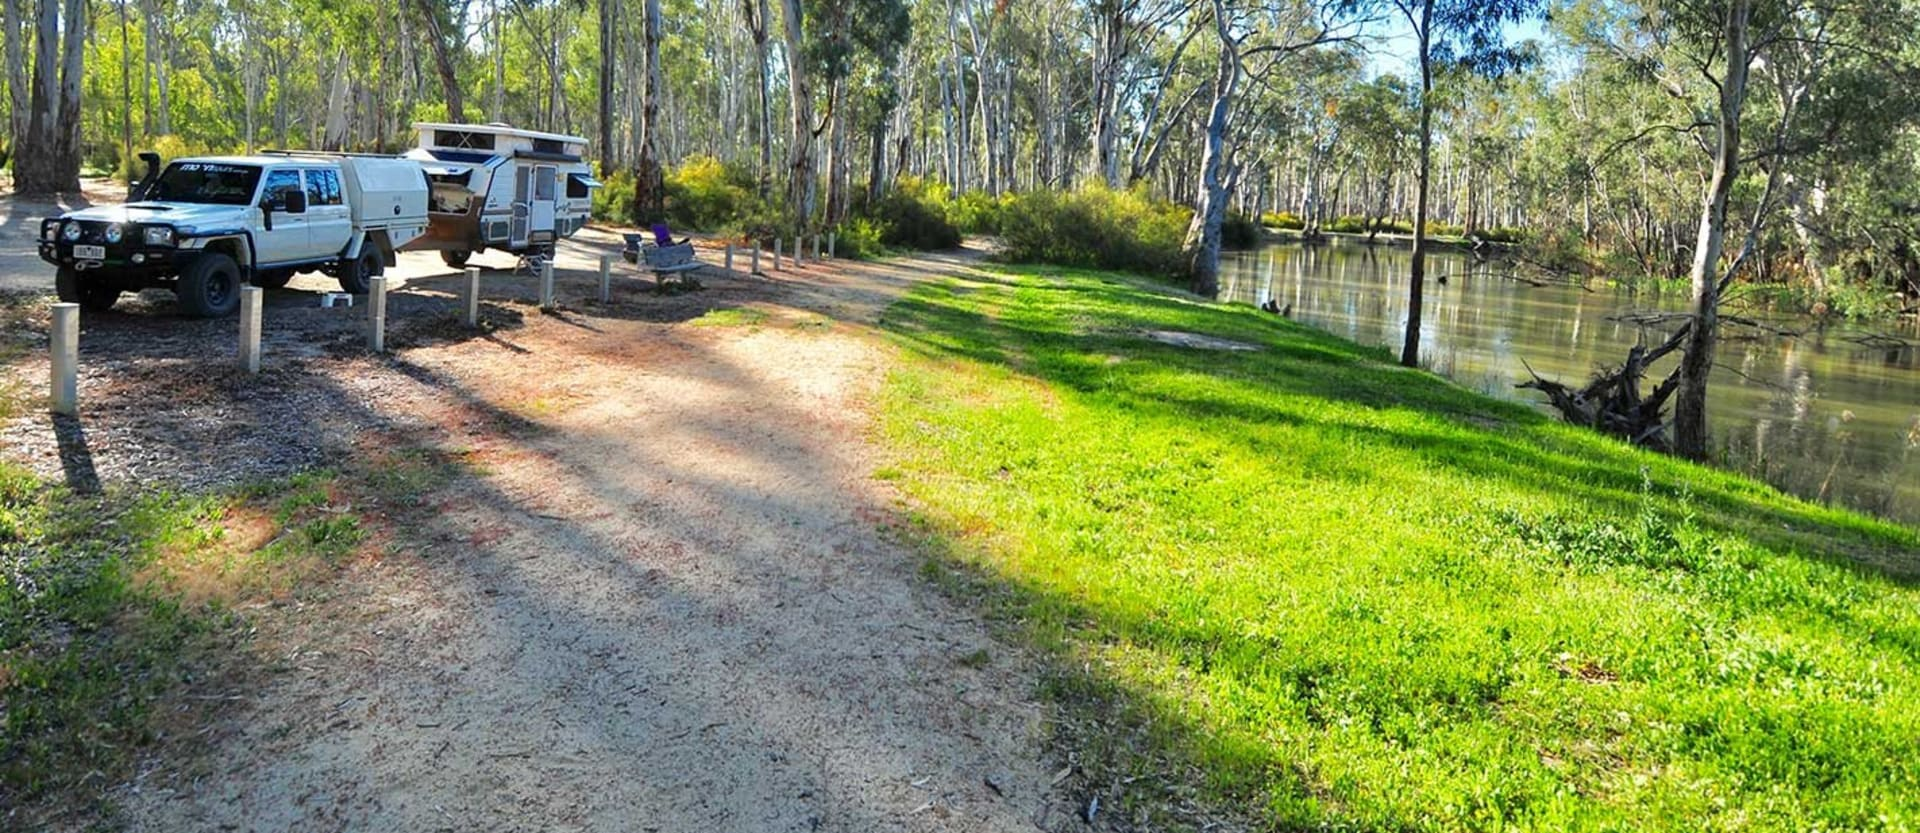 Exploring the Murray River NSW 4x4 travel guide